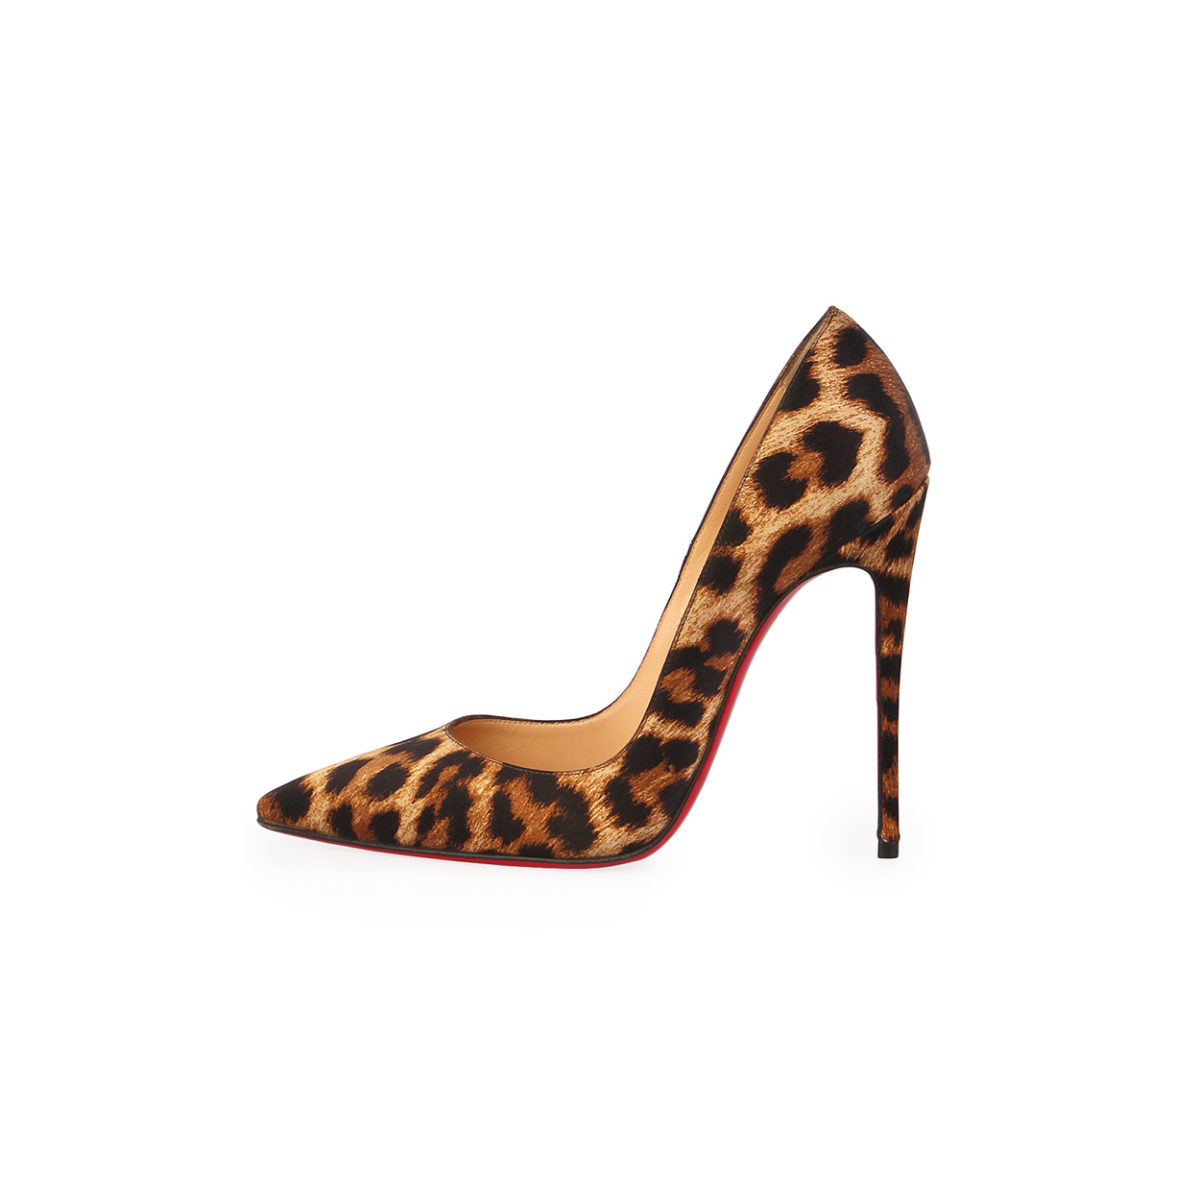 b6aa34ceab2f CHRISTIAN LOUBOUTIN Satin So Kate 120 Pumps Leopard Print - S: 36.5 ...